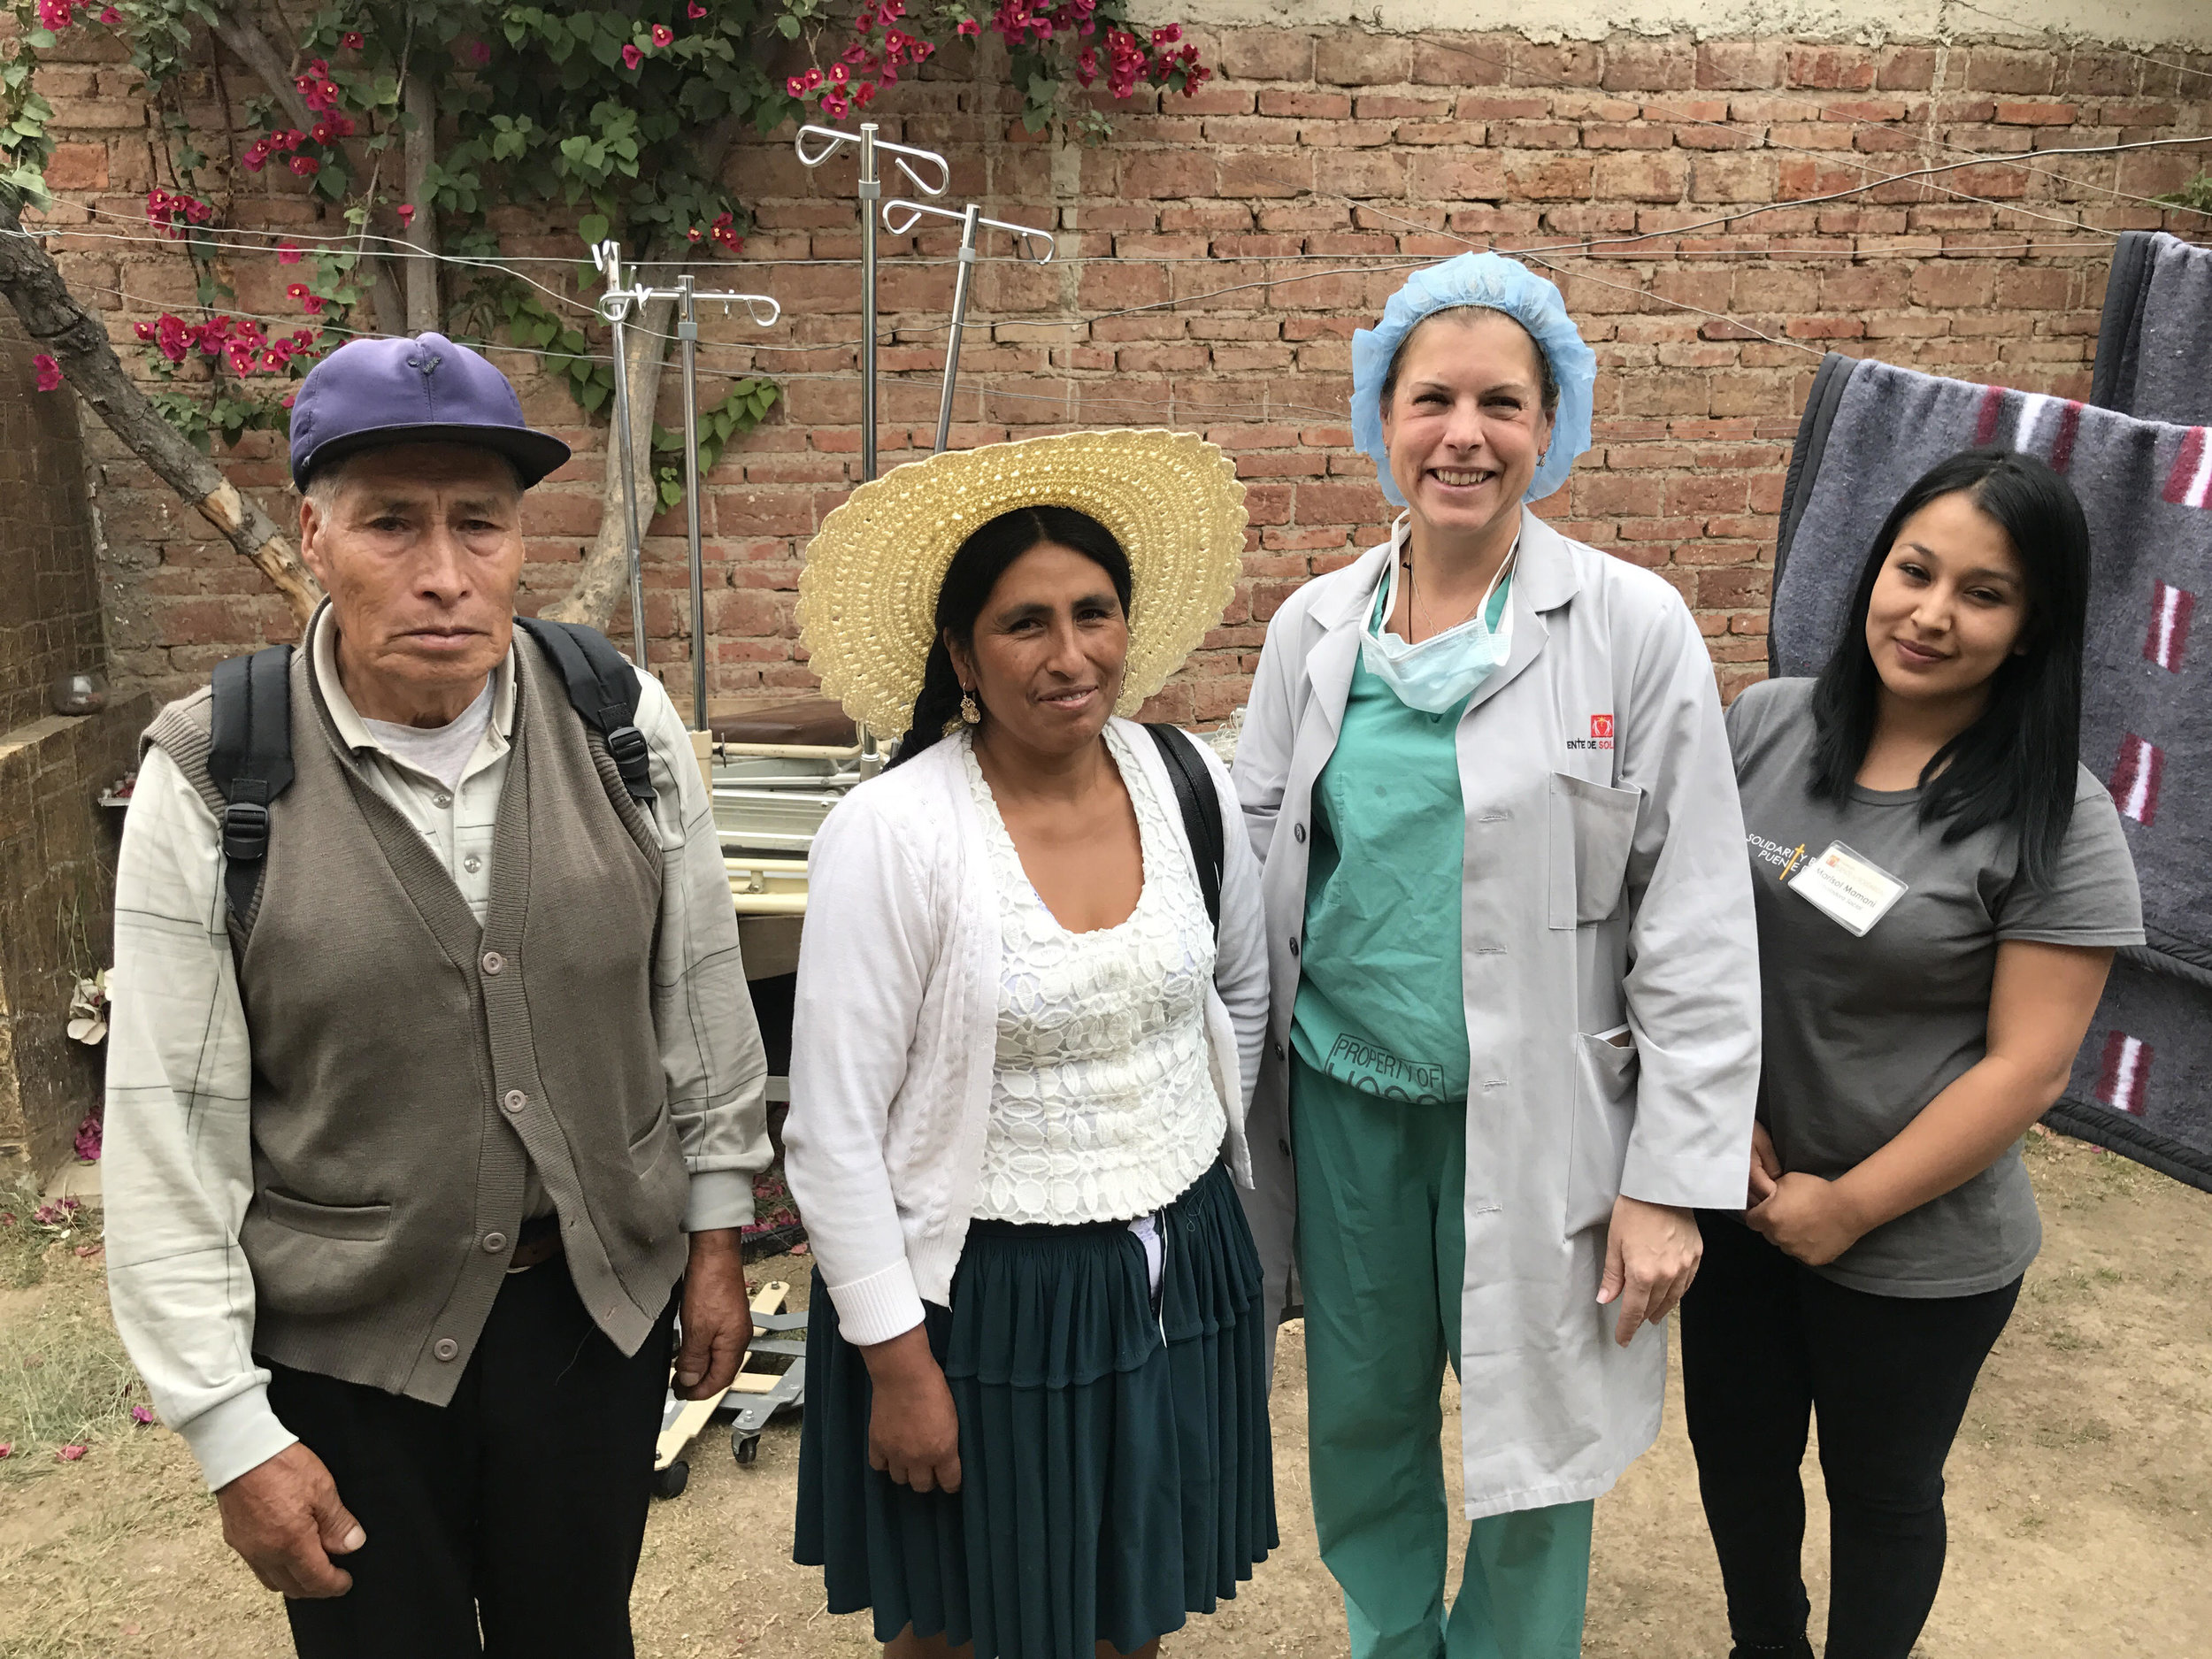 Dr. Tomezsko and socialworker, Marizol Mamani Gomez, share the news of a successful surgery with members of Daniela's family.